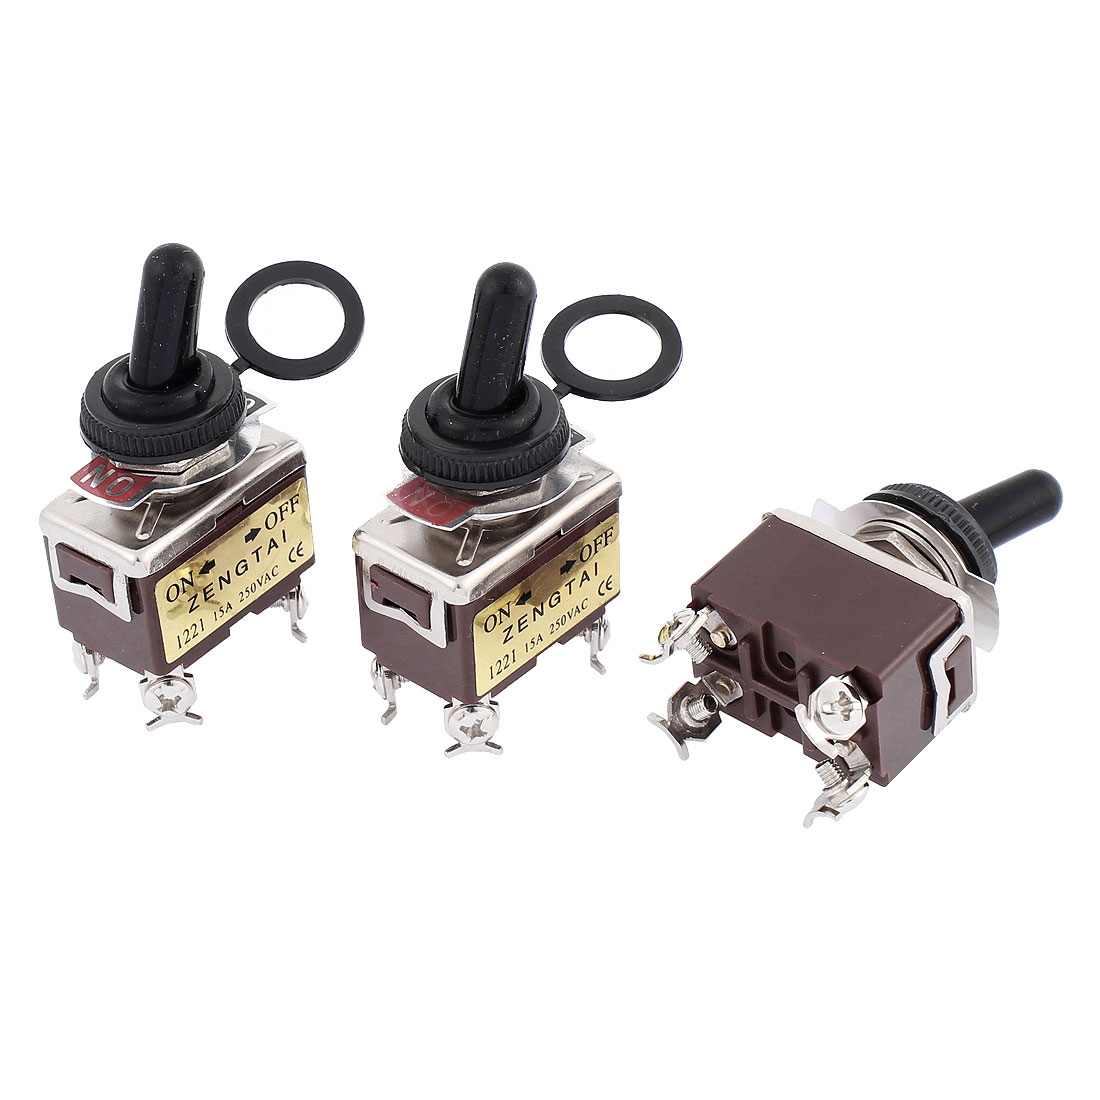 AC 250V 15A DPST ON-OFF 2 Positions 4 Terminals Latching Toggle Switch 3 Pcs